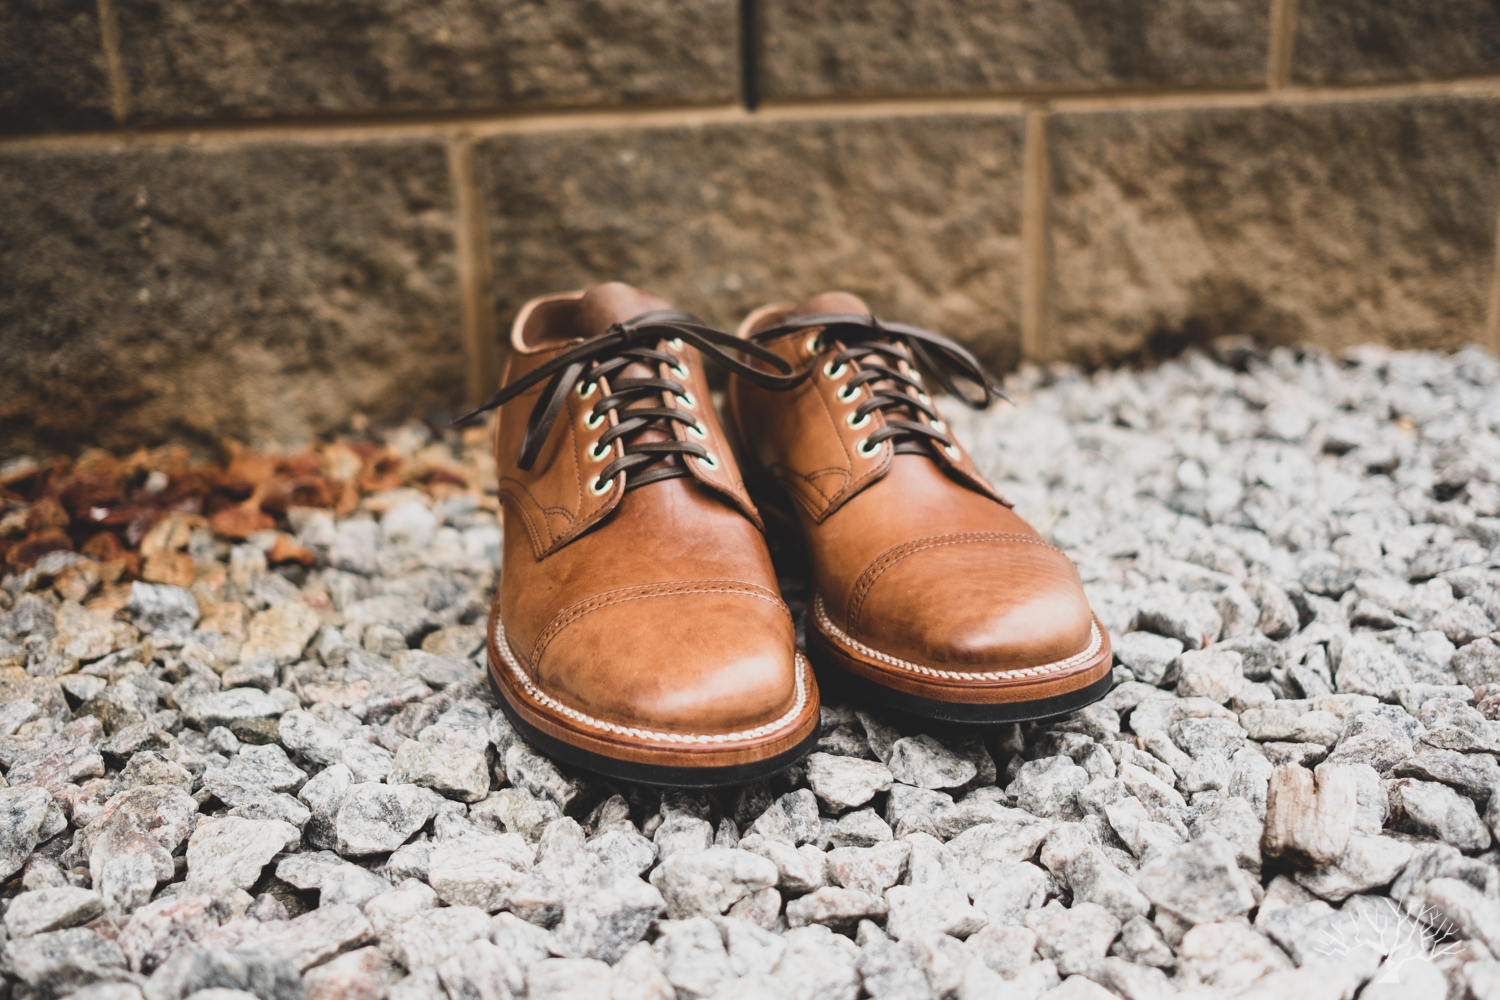 viberg for withered fig maryam crust horsebutt 145 oxford